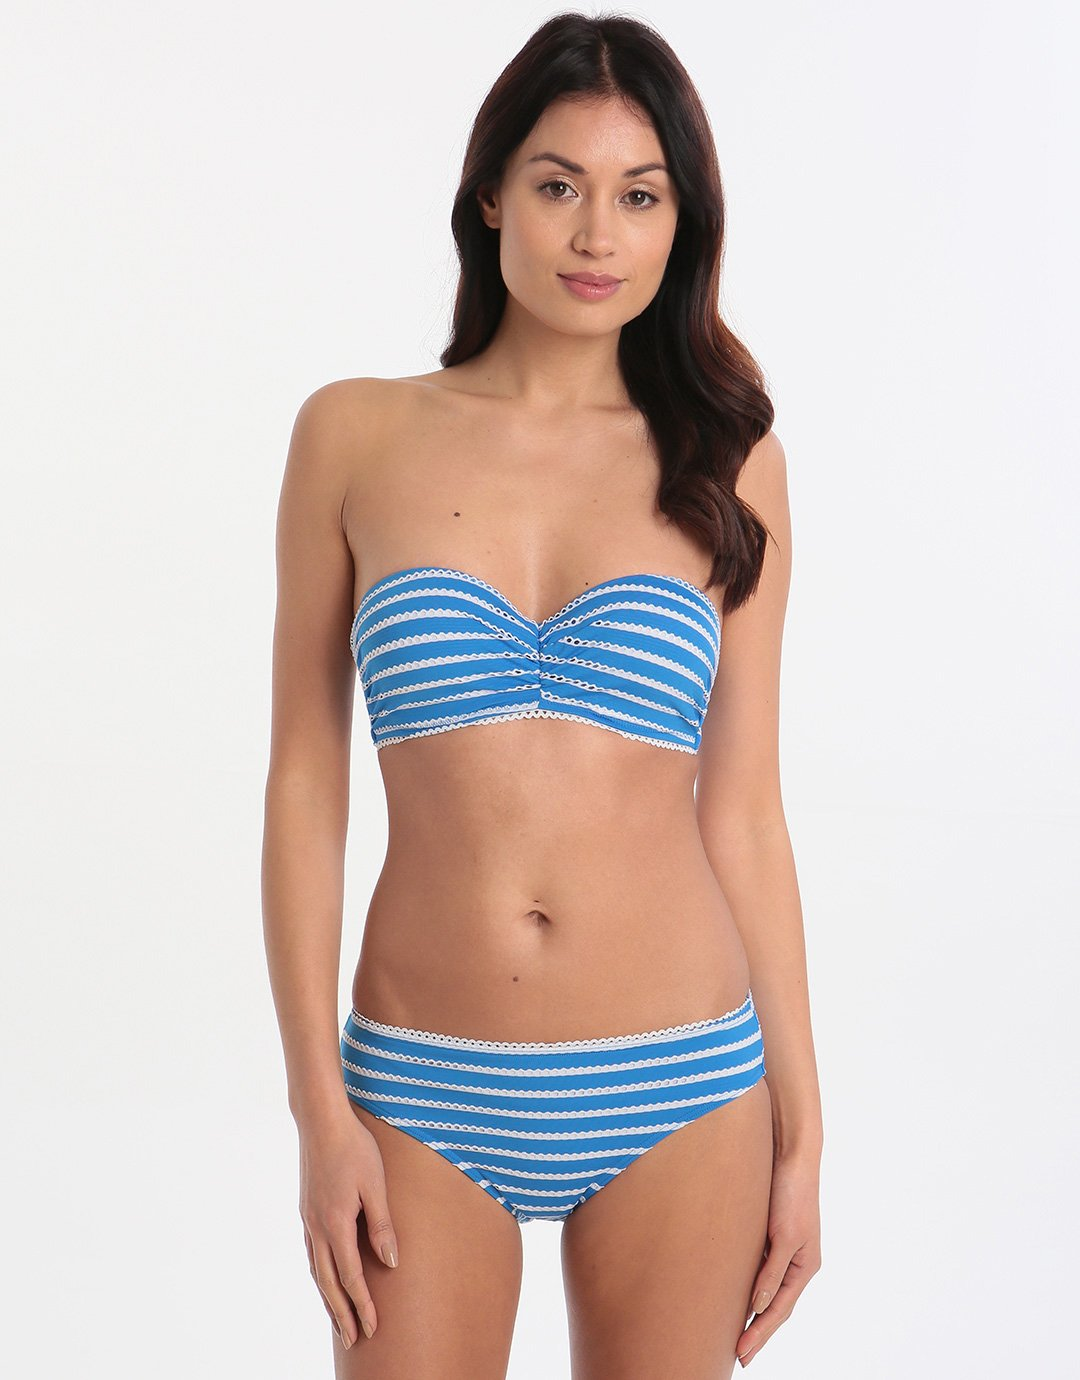 Lepel London Tidal Wave Moulded Balconette Bikini Top - Blue/Cream